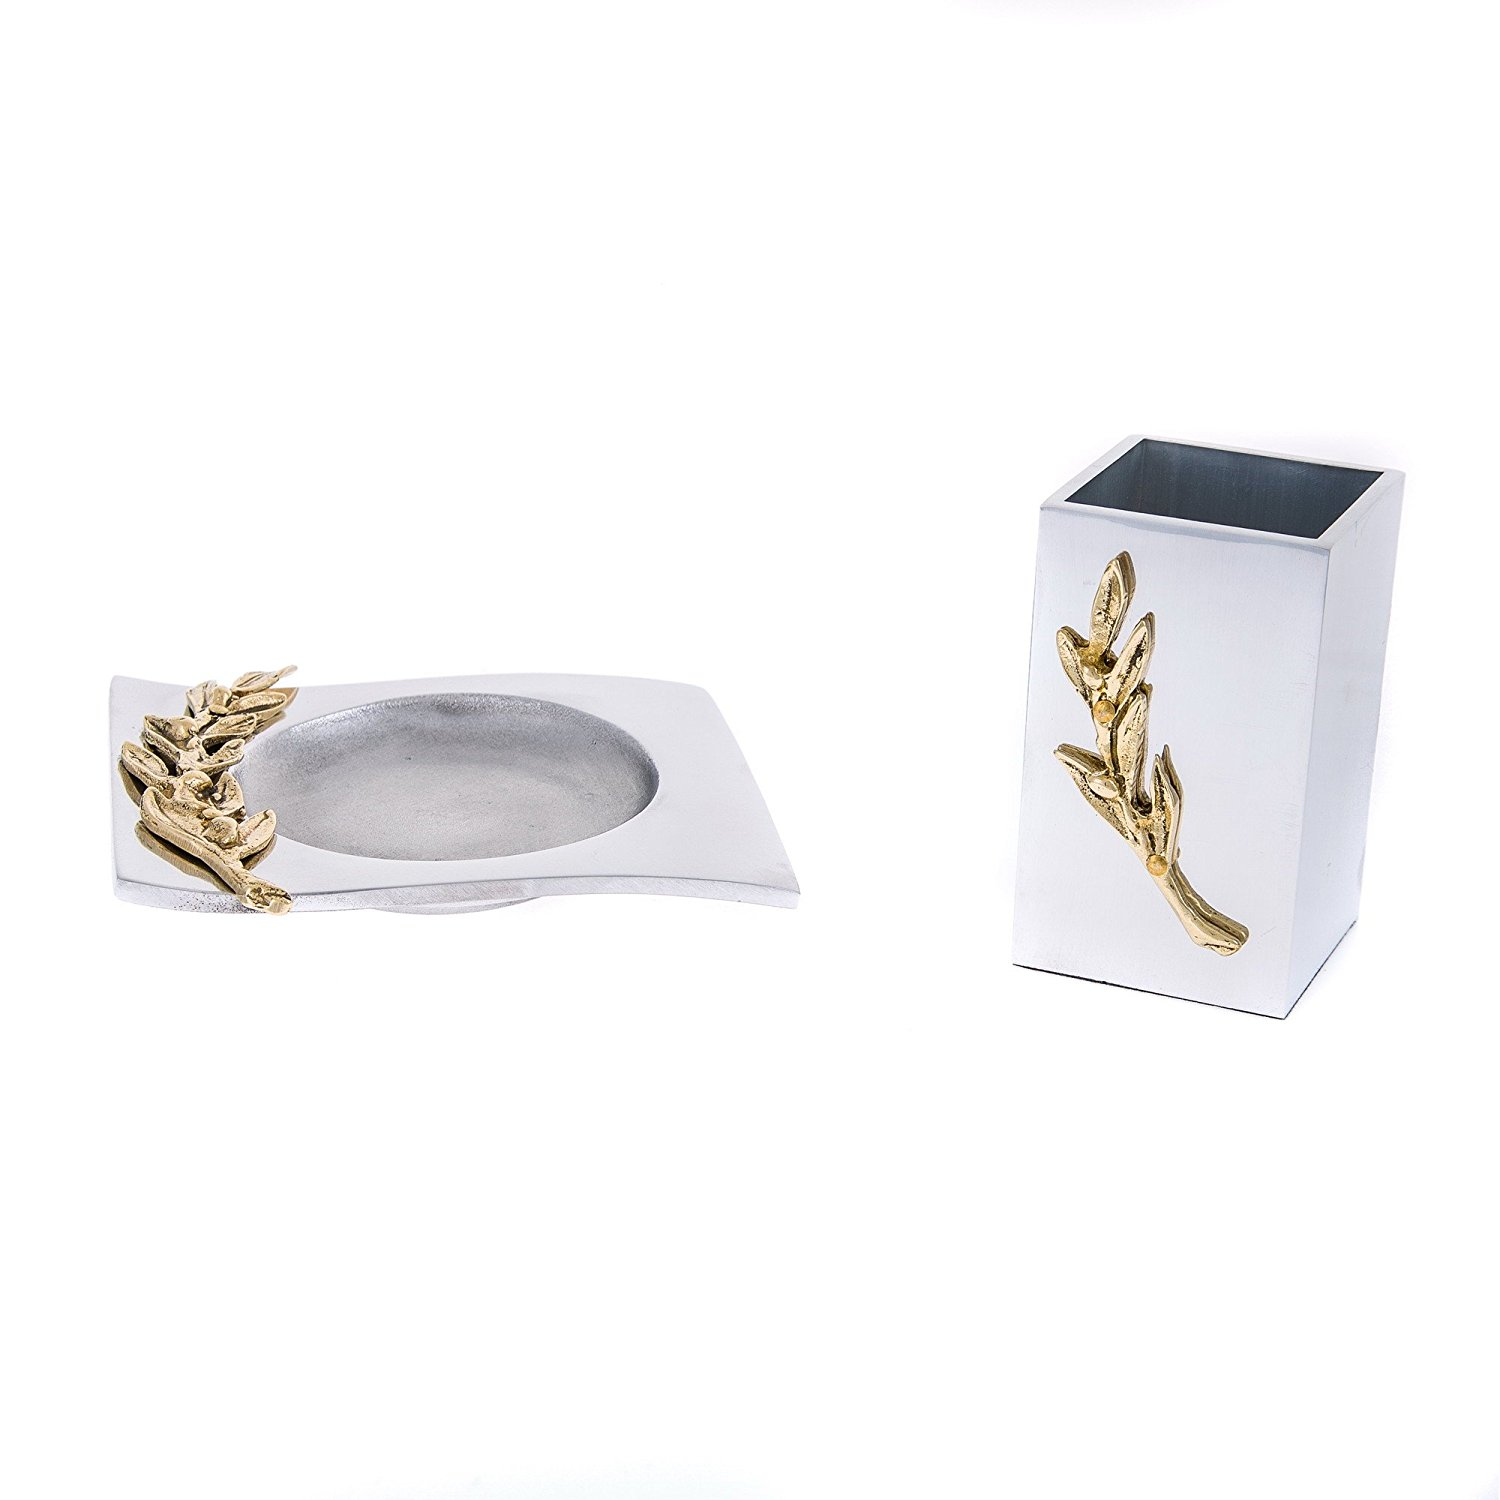 Get Quotations Set Of 2 Stylish Solid Metal Office Desk Accessories Handmade Golden Olive Branch Design